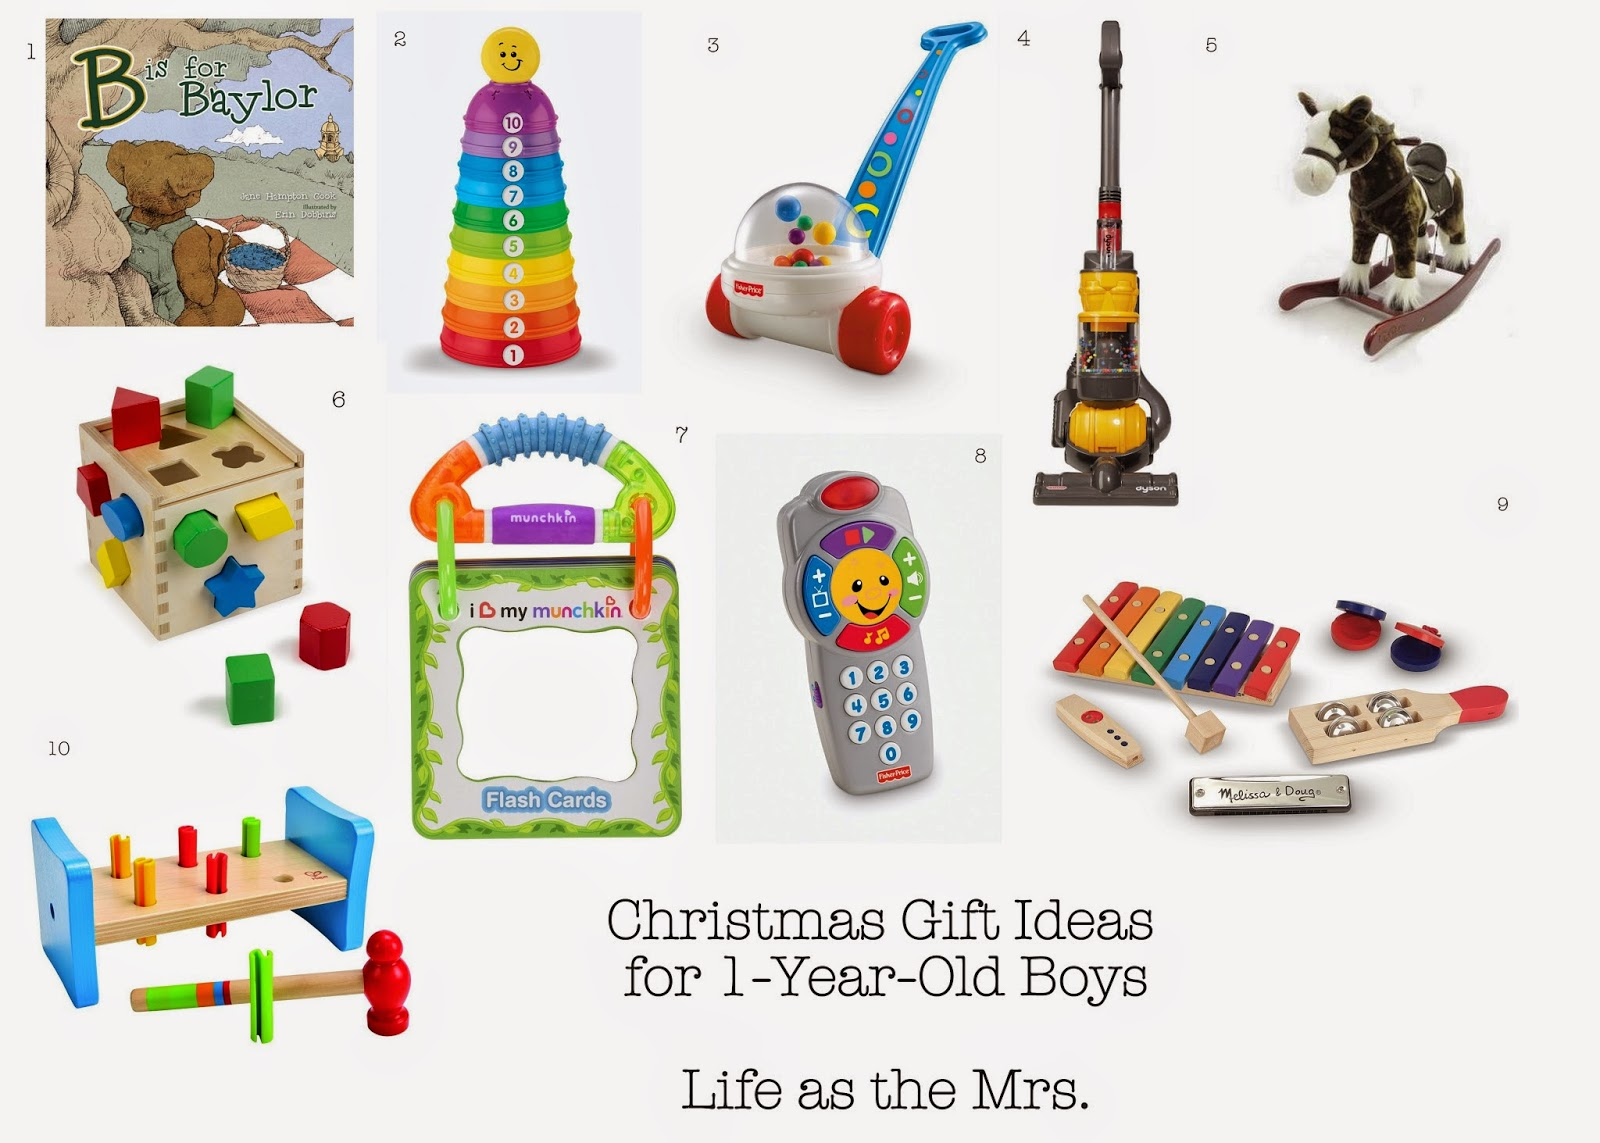 life as the mrs.: christmas gift ideas for one-year-old boys